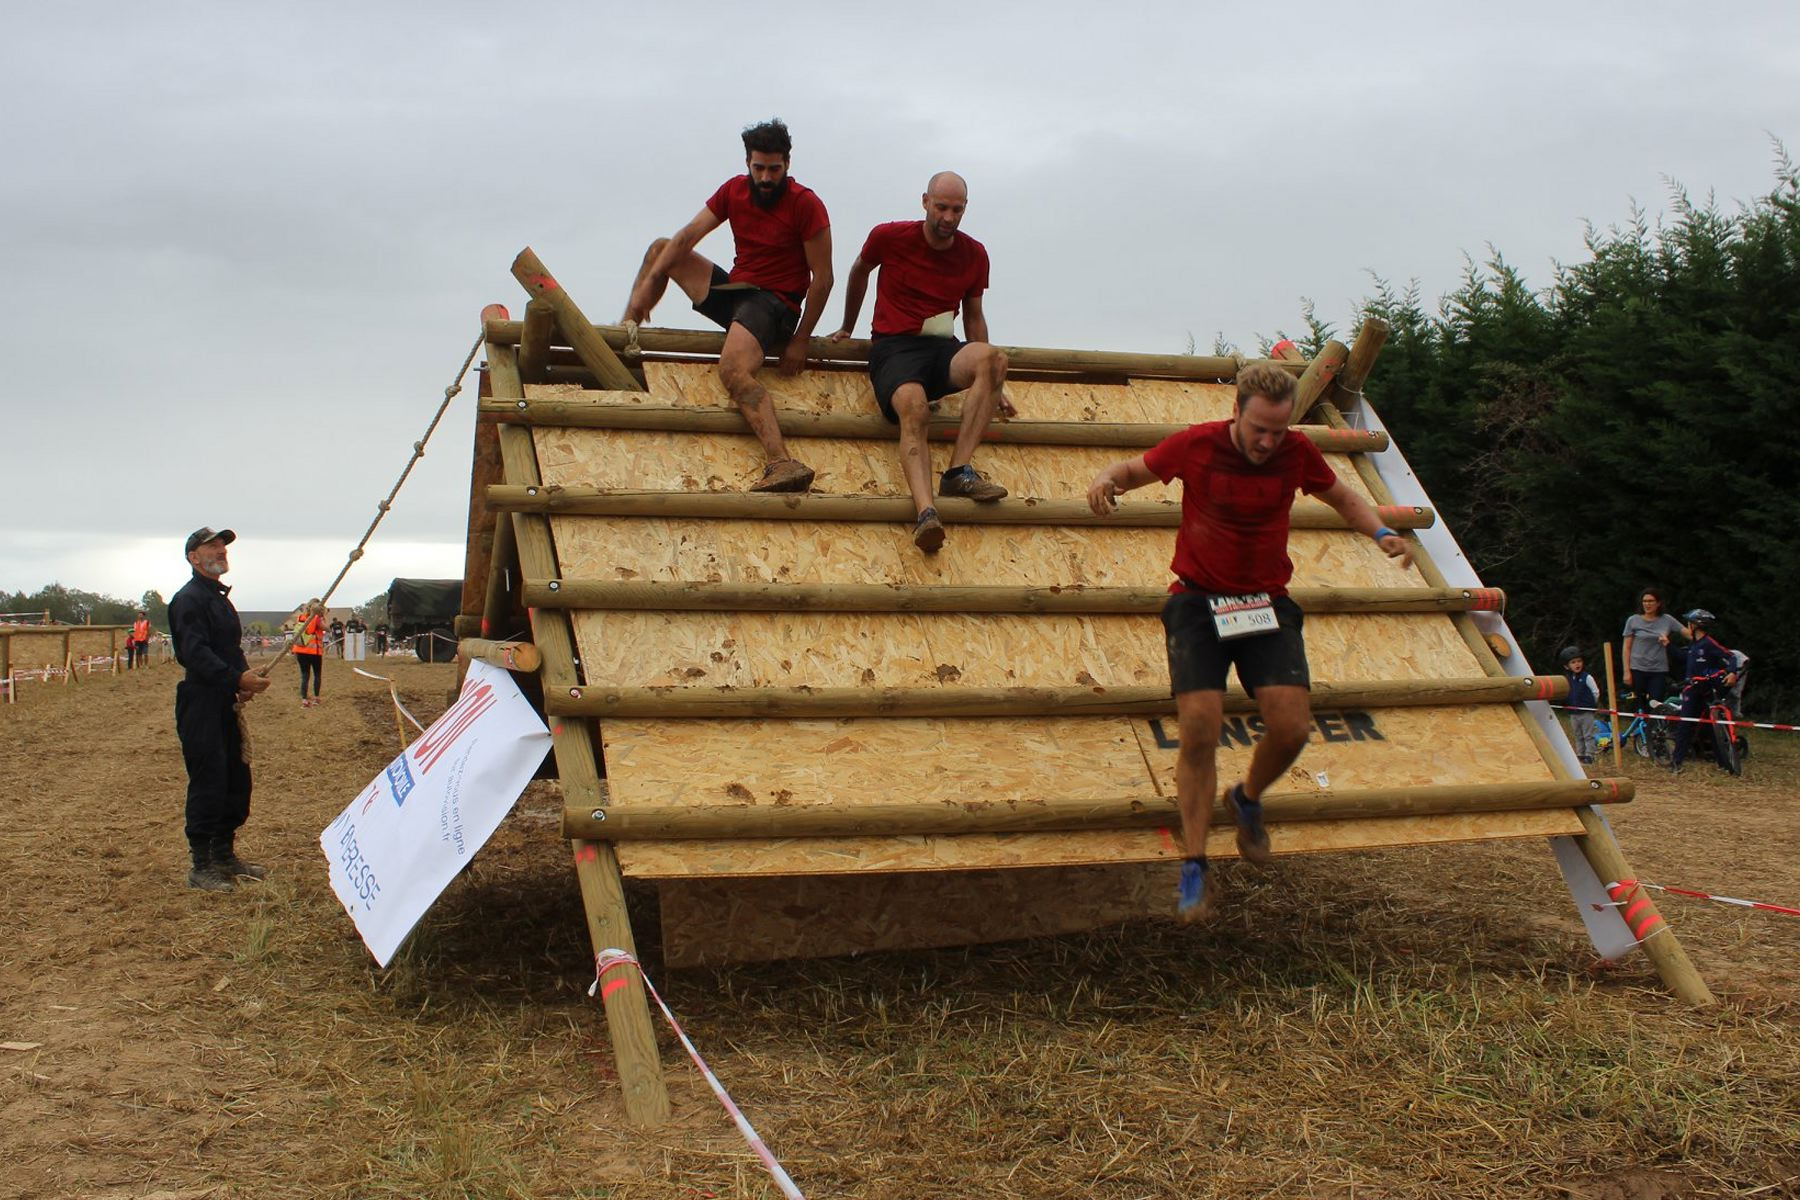 LANSFER_Obstacle_Panneau-incline_2018_03